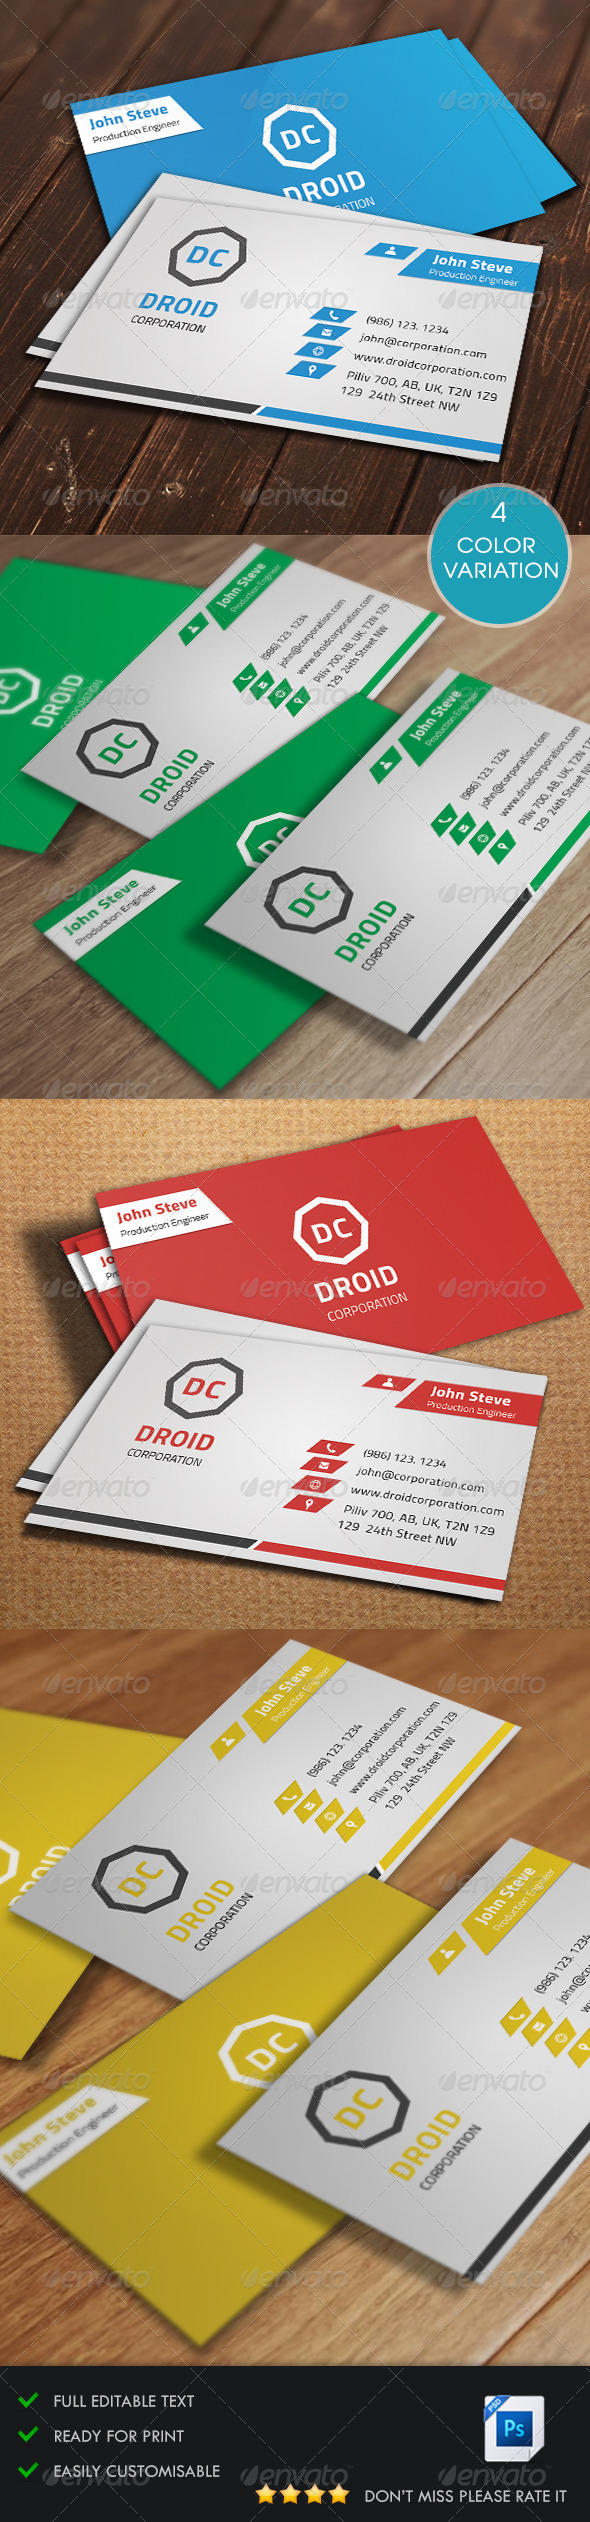 GraphicRiver Modern Corporate Business Card v7 5547193